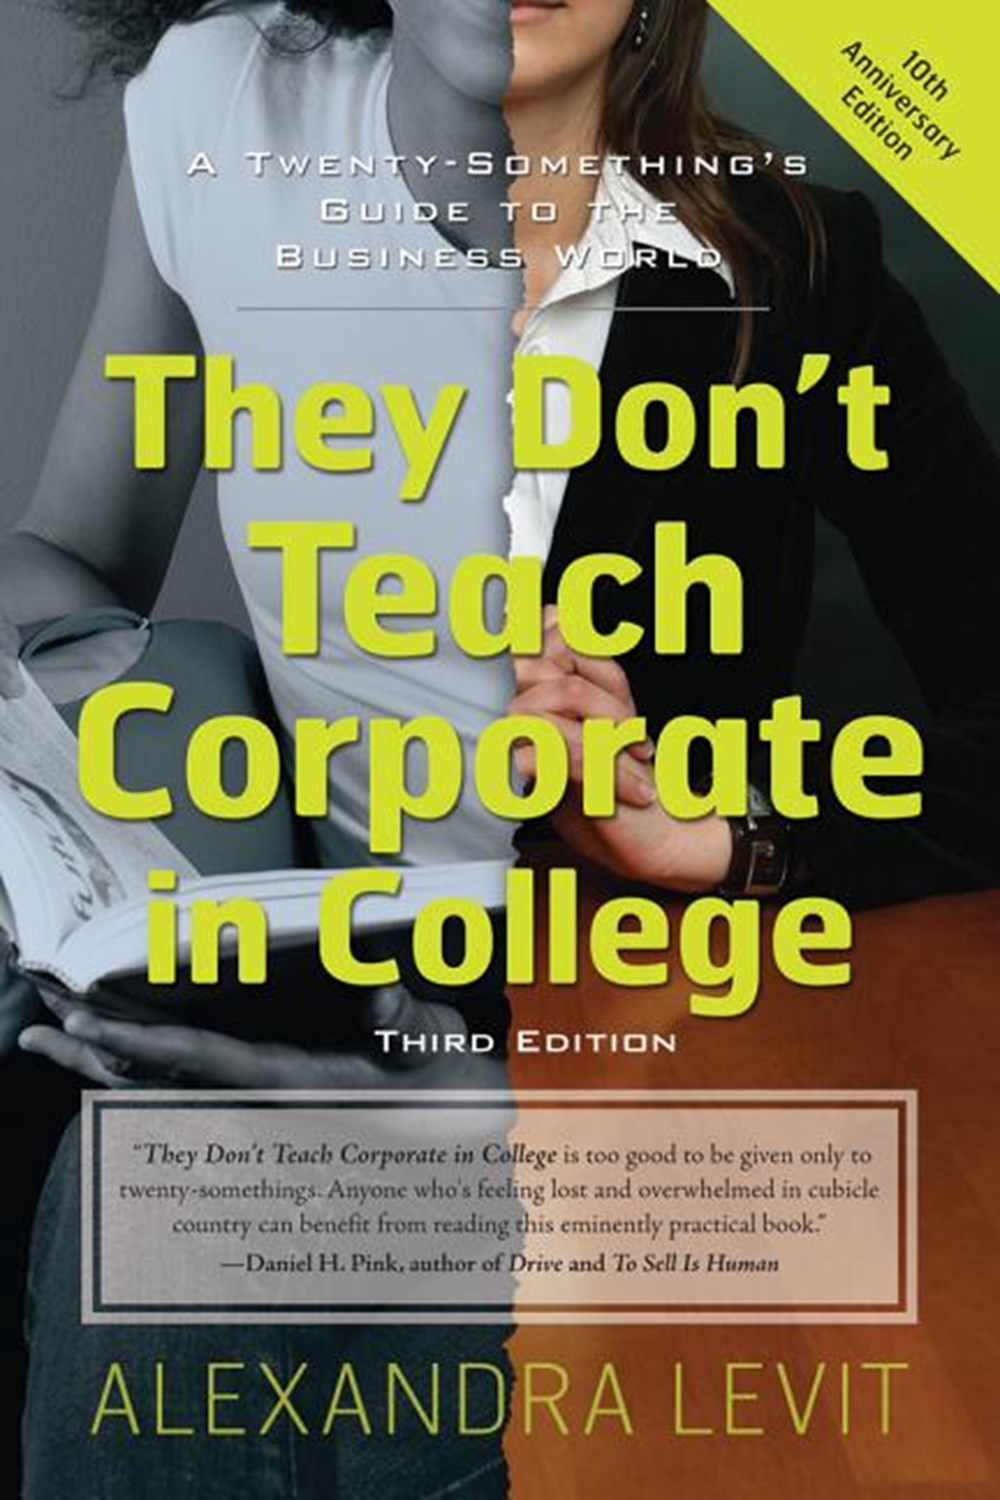 They Don't Teach Corporate in College, 3rd Edition A Twenty-Something's Guide to the Business World